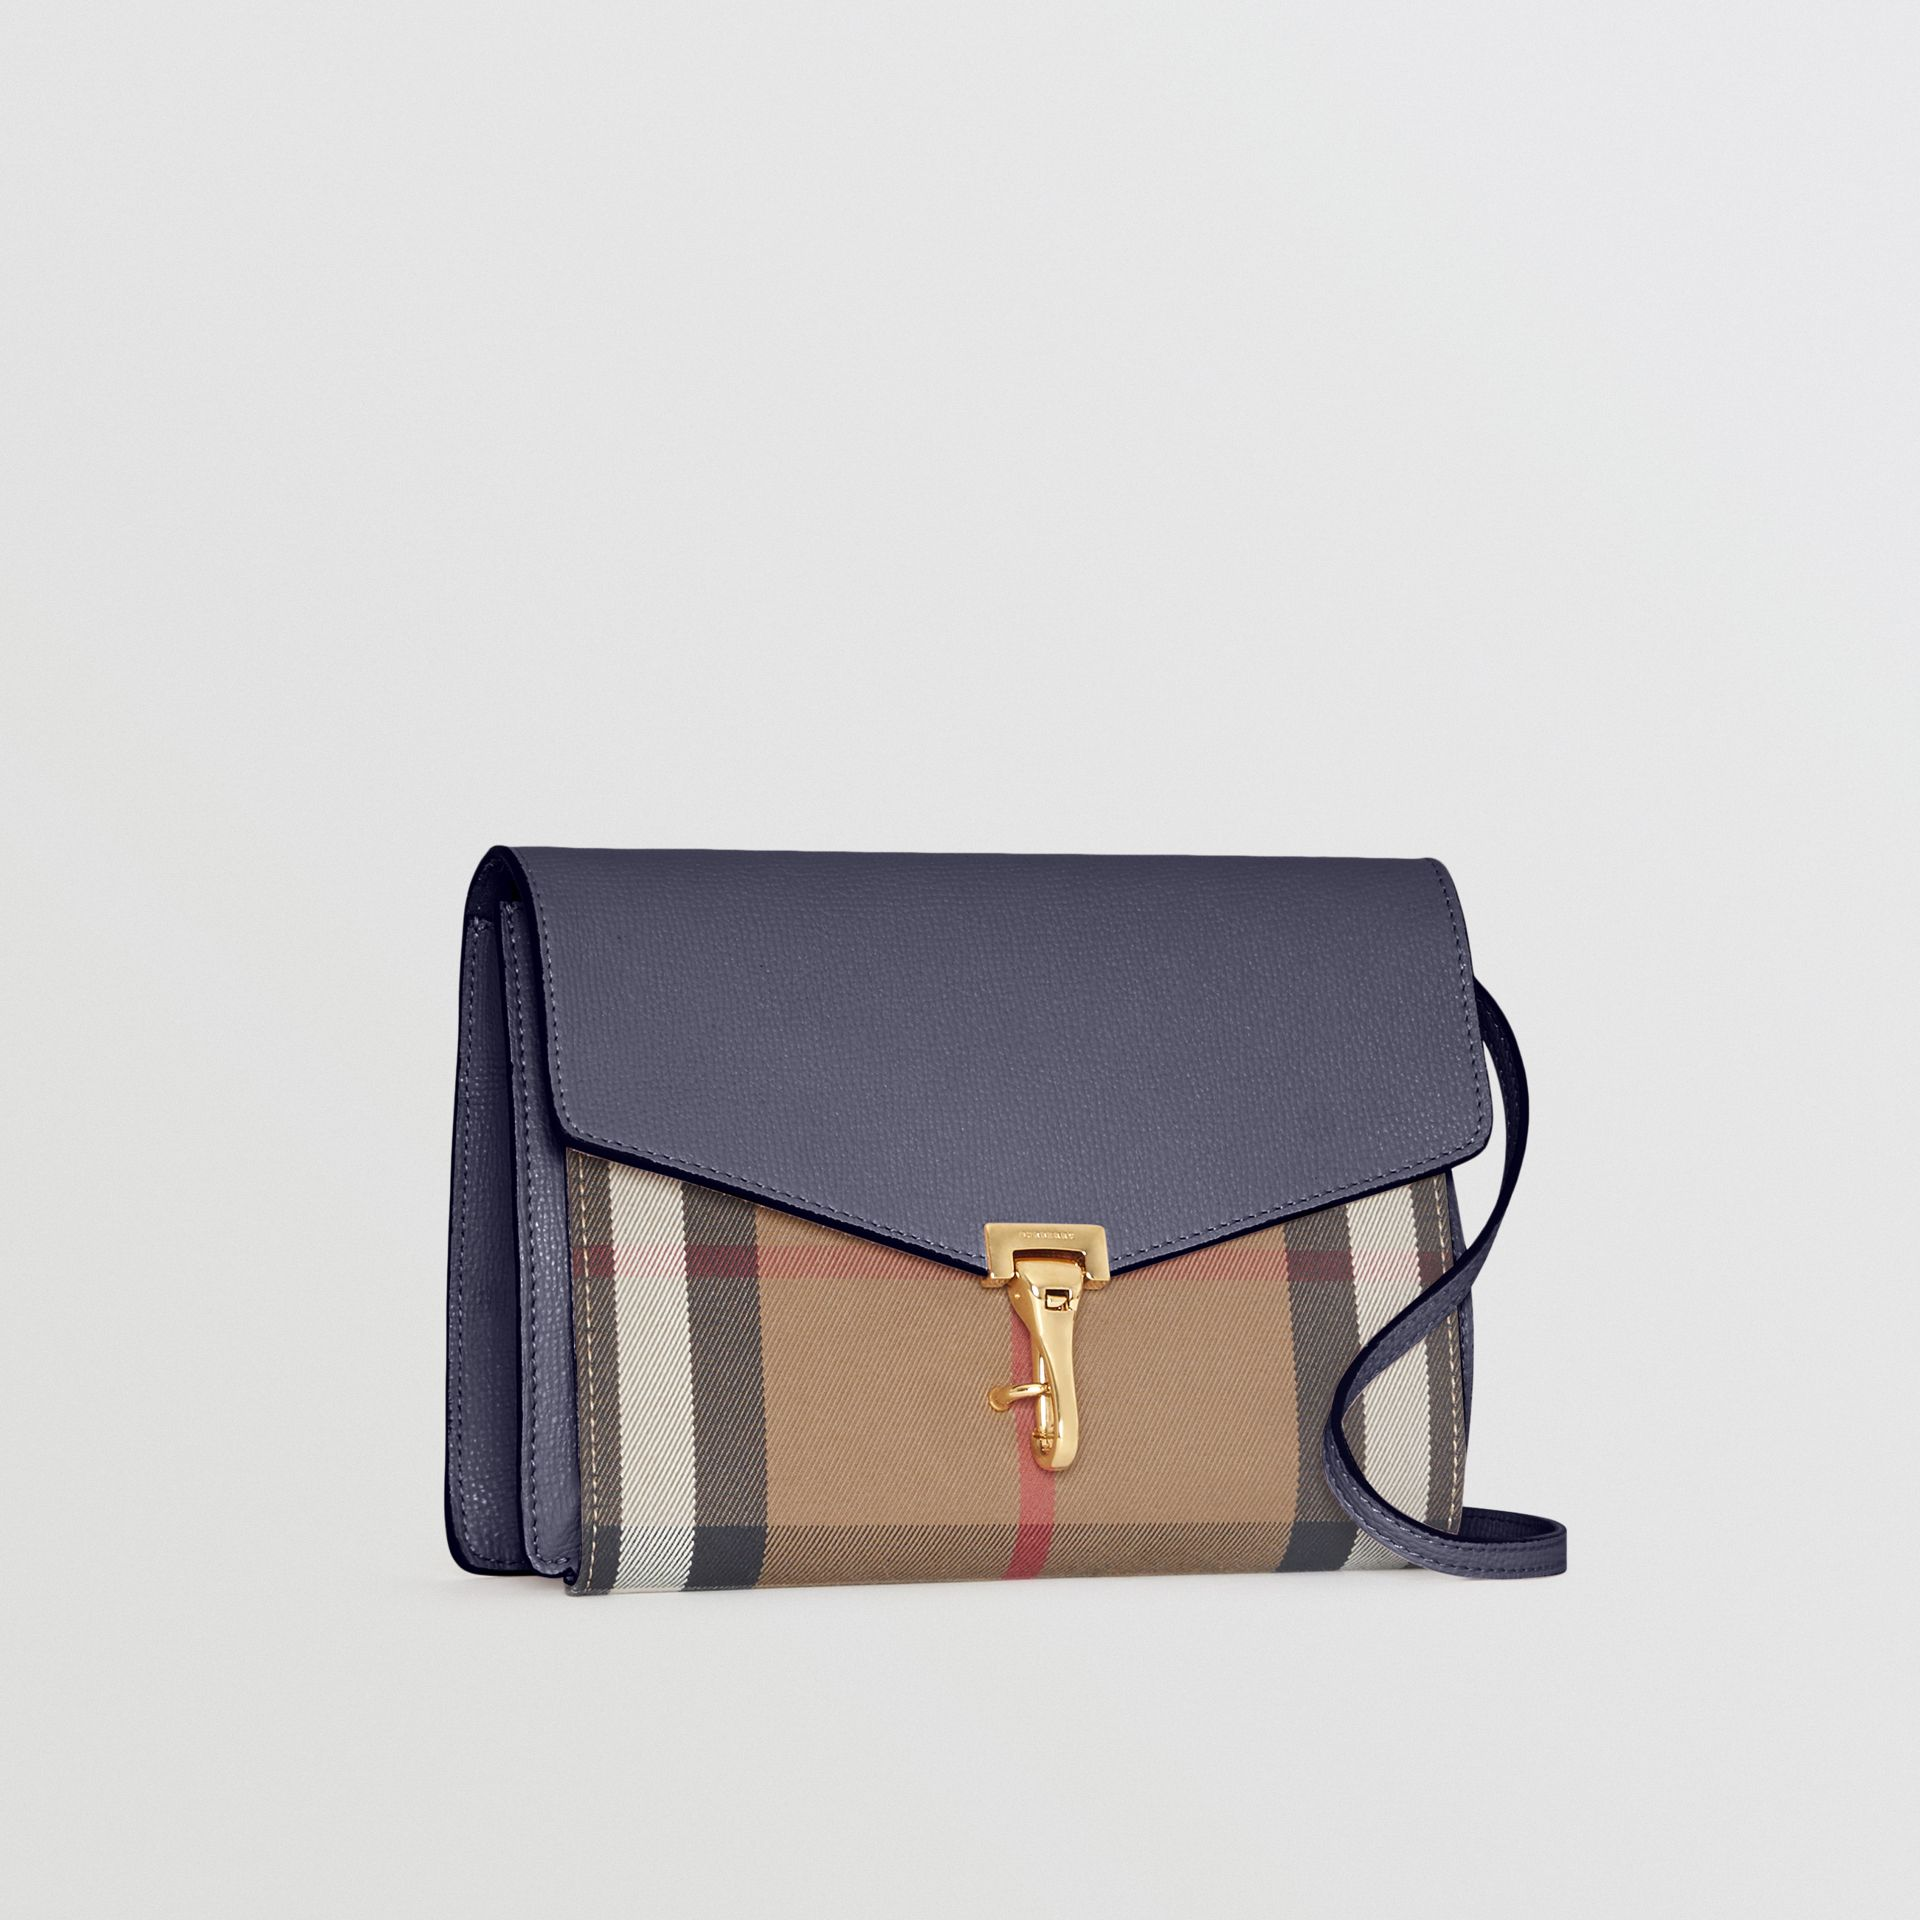 Small Leather and House Check Crossbody Bag in Ink Blue - Women | Burberry - gallery image 6